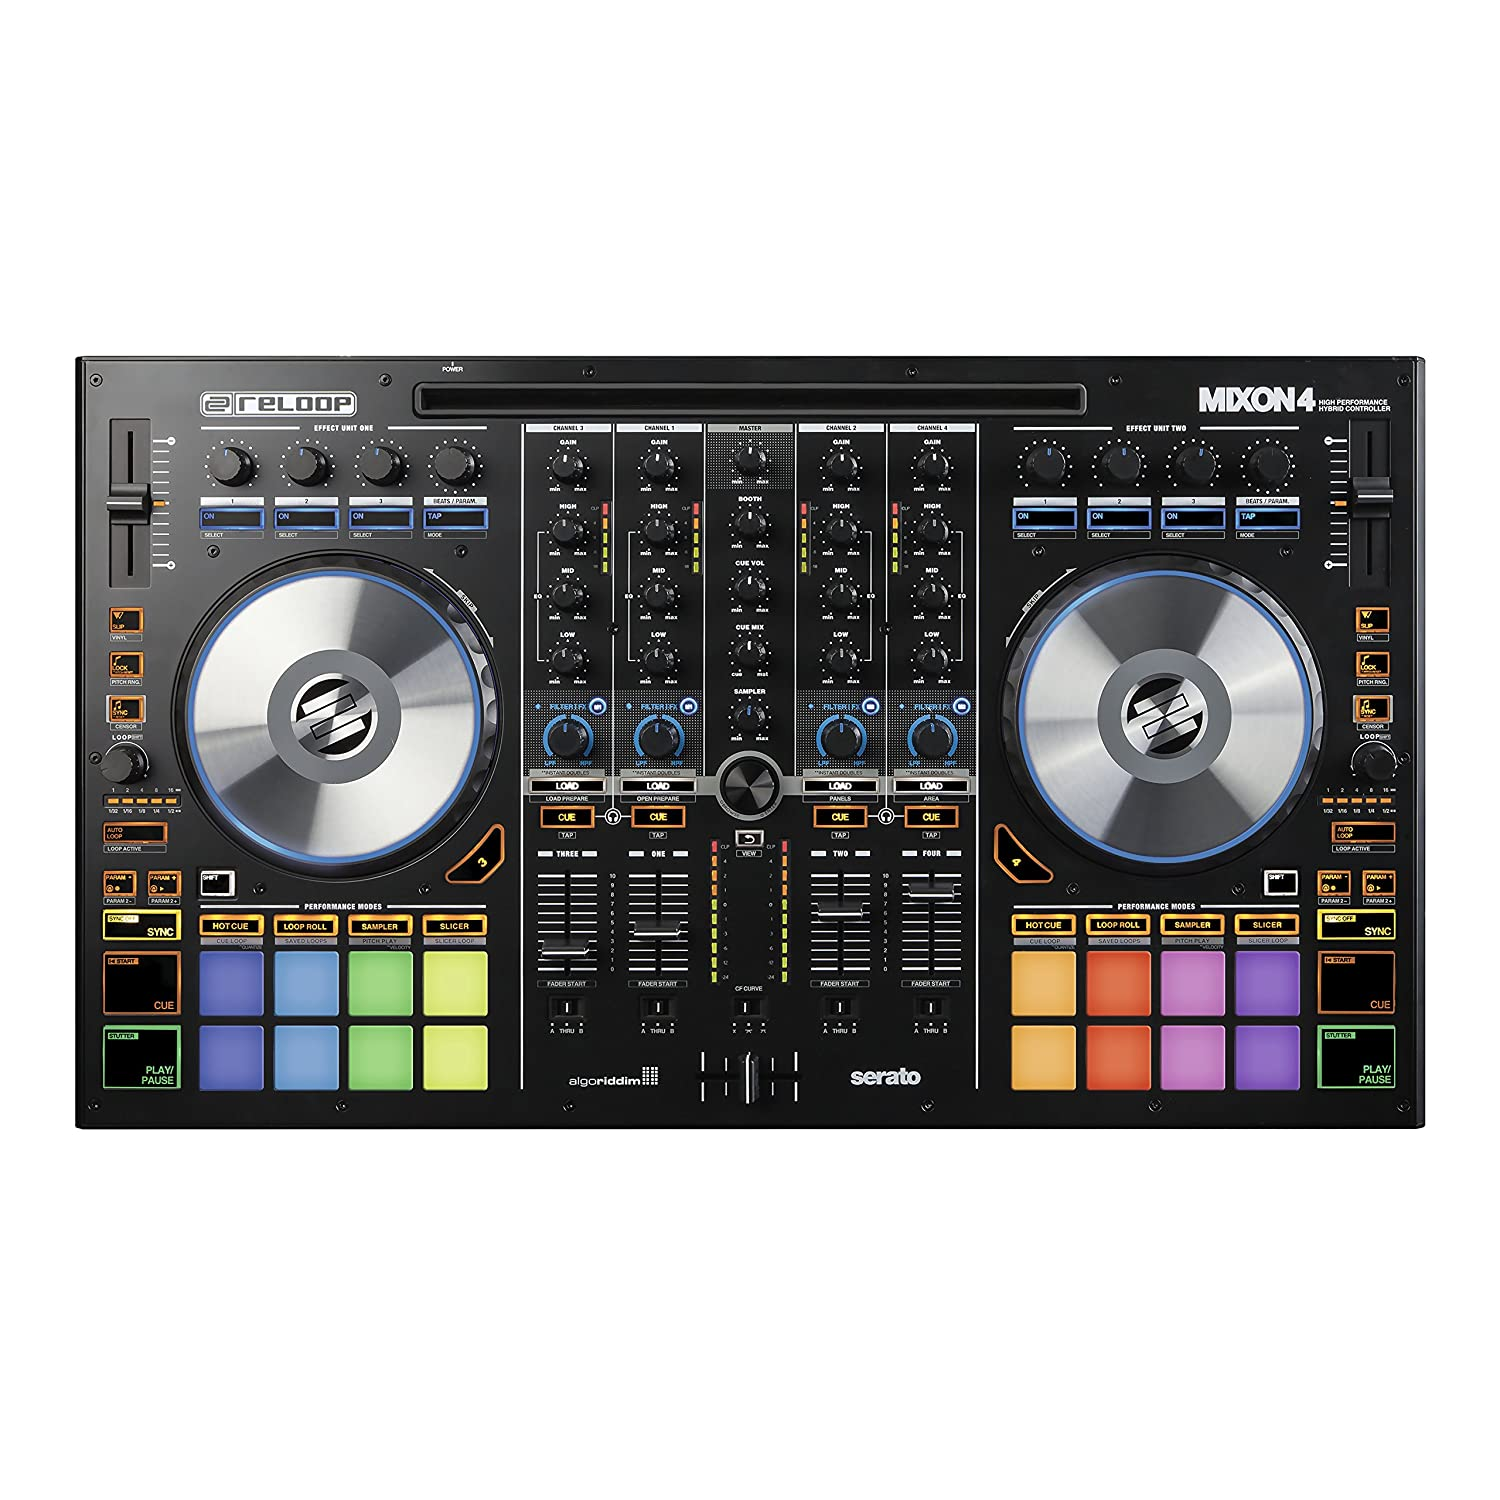 Reloop Mixon 4 High Performance 4-Channel Hybrid DJ Controller Black Friday Deals 2020